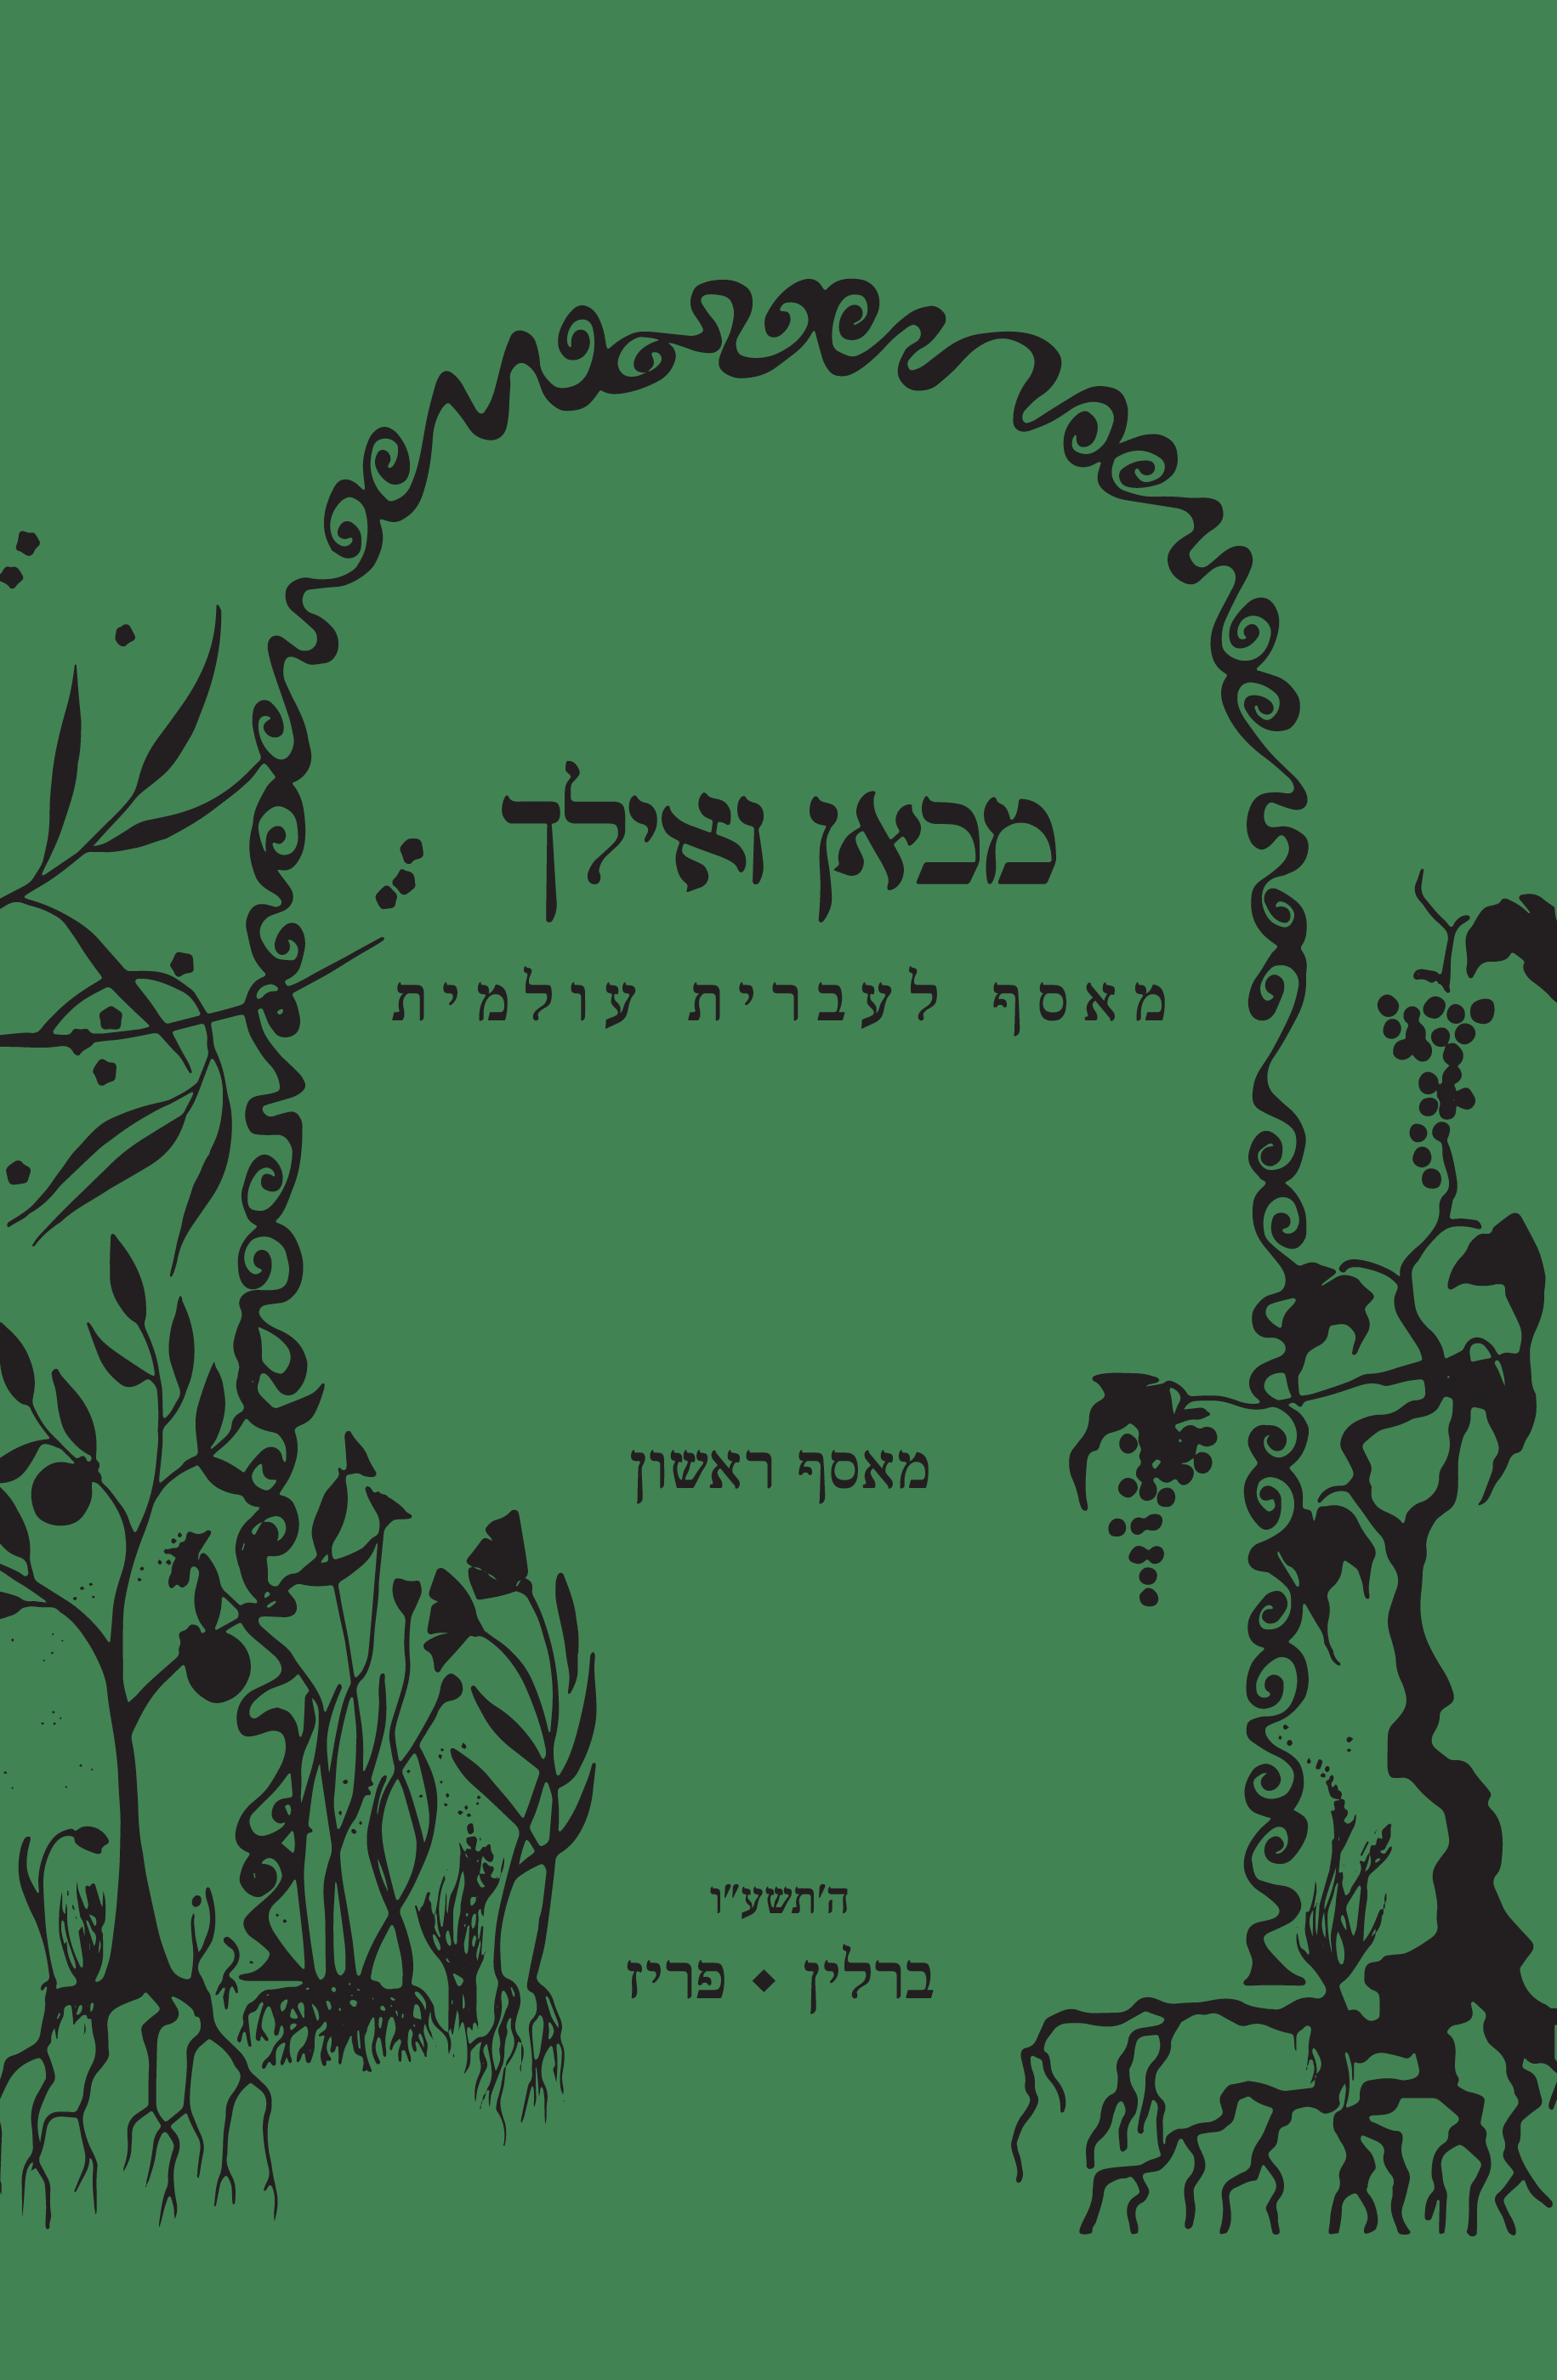 <p>Tal Hever-Chybowski's Journal for Diasporic Hebrew, <em>Mikan ve'eylakh</em>, published in Berlin and Paris, 2016. </p>